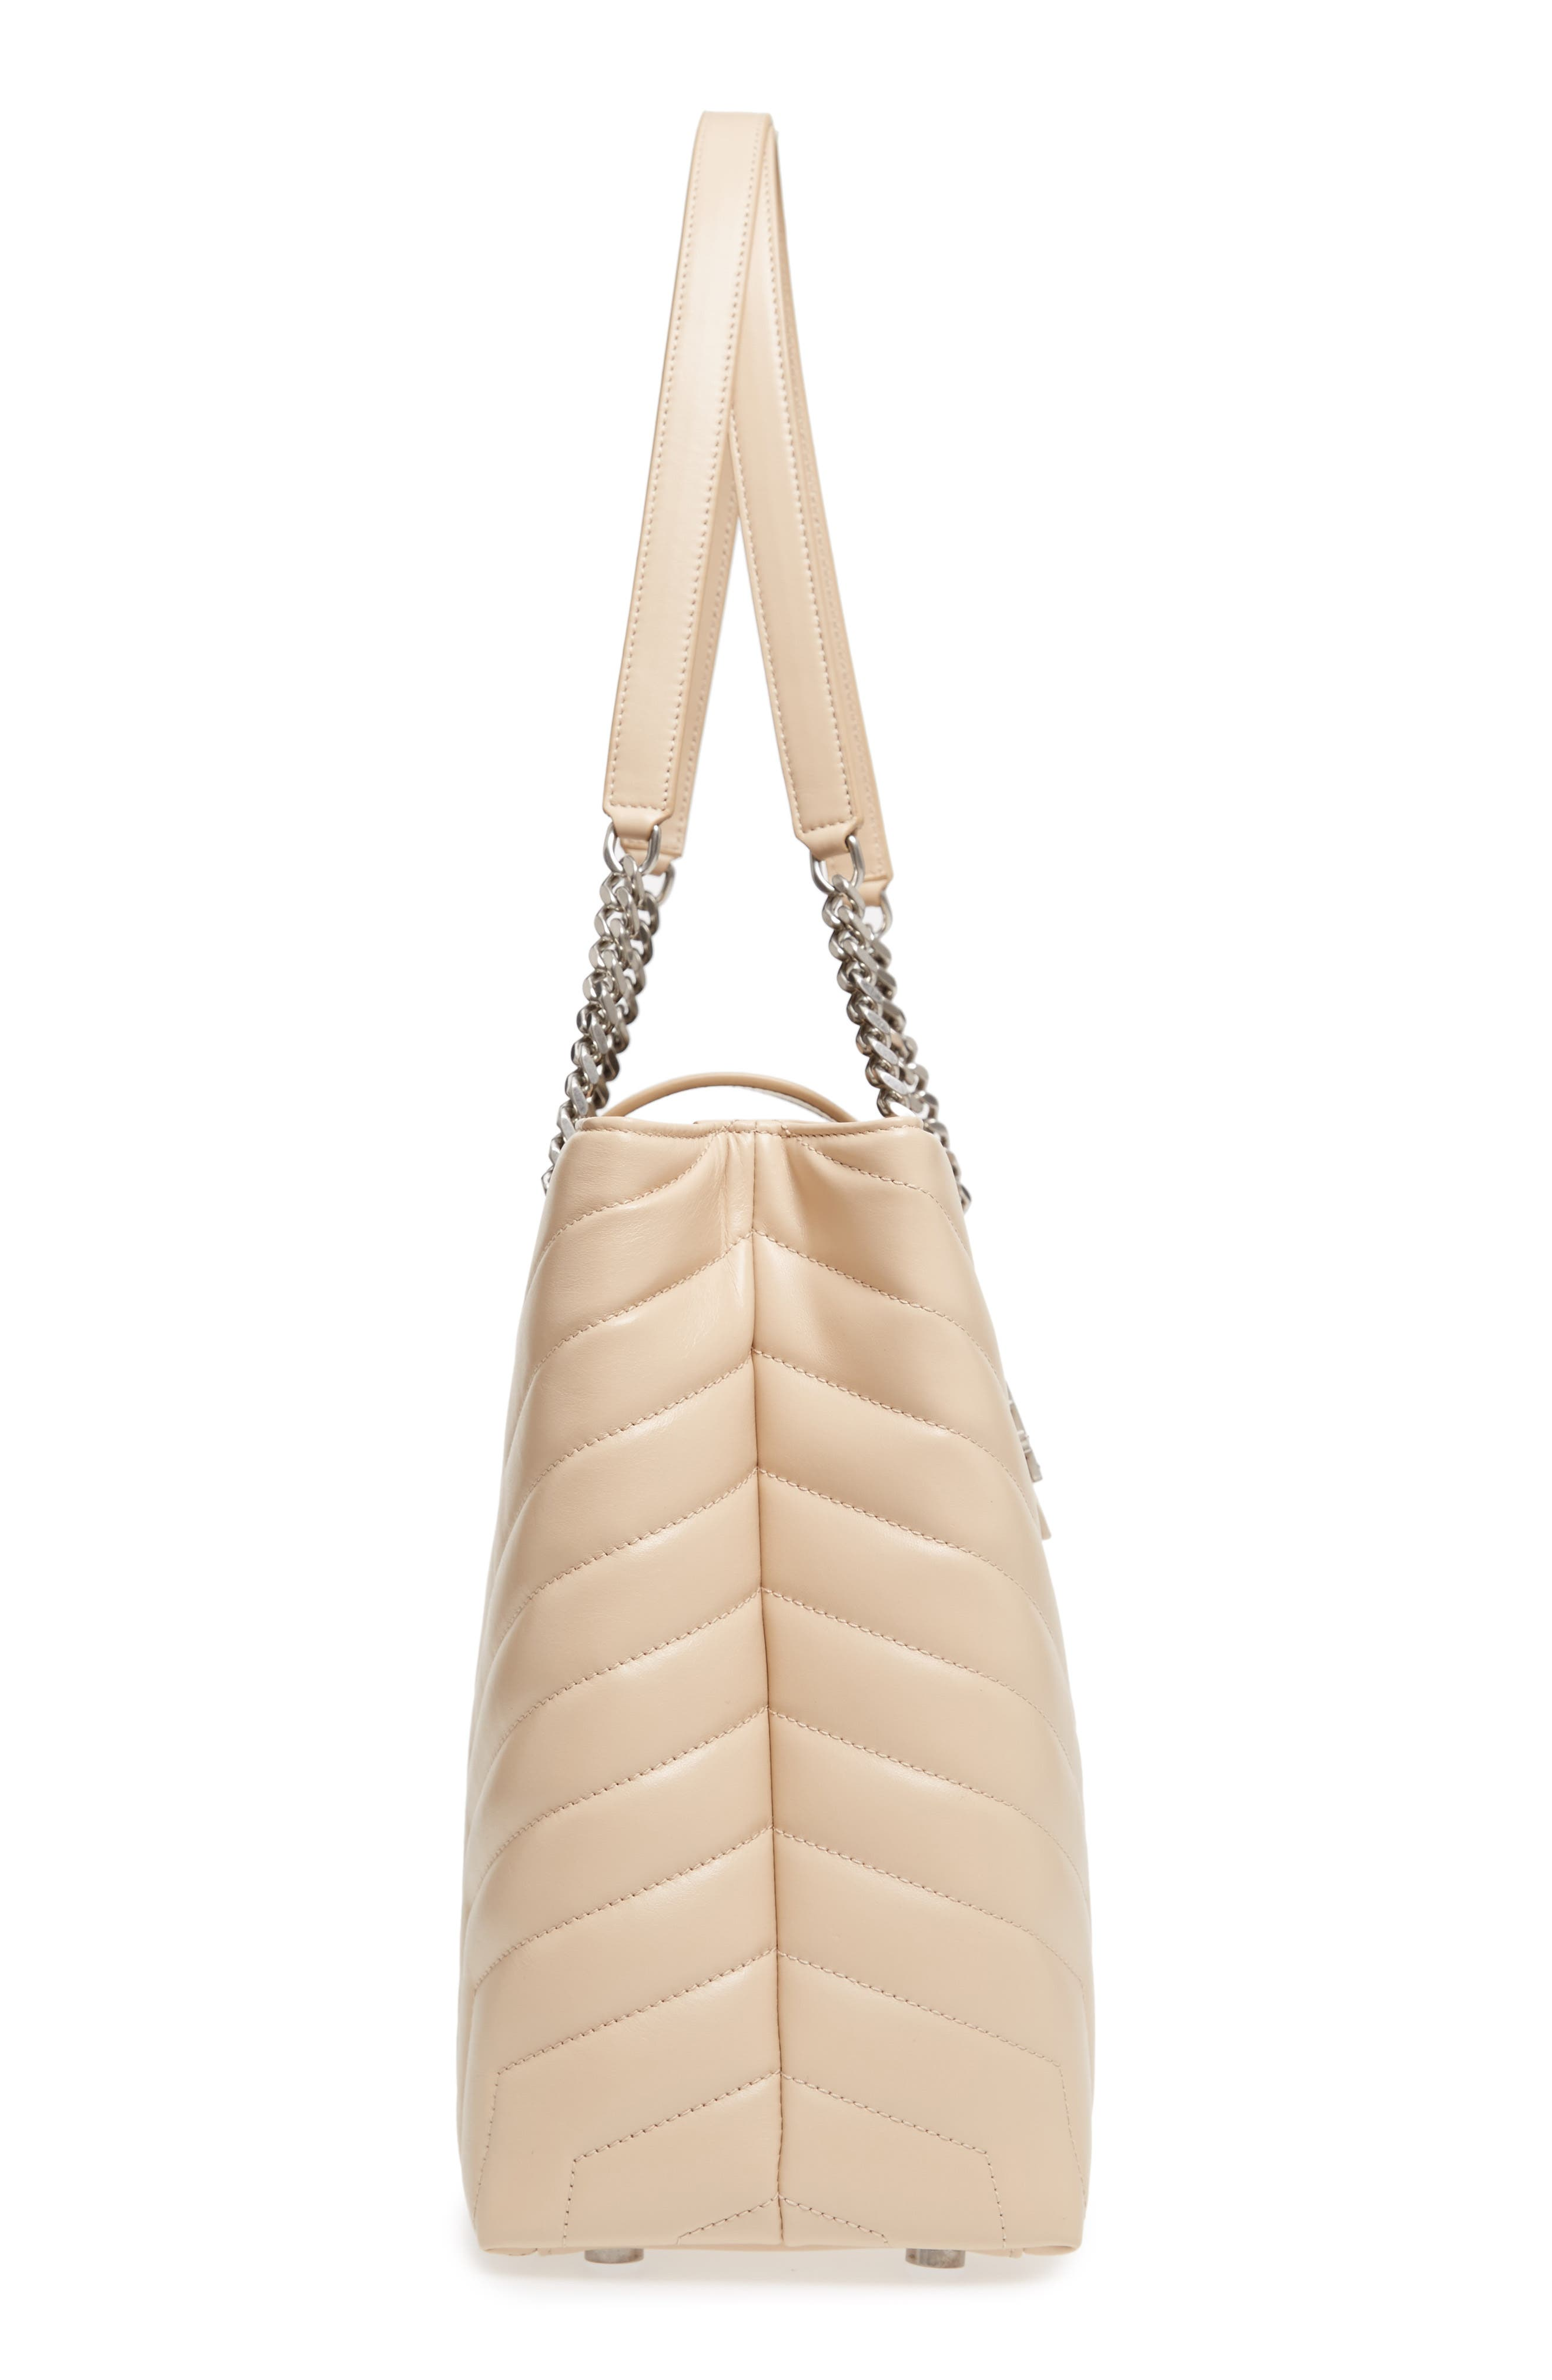 Large Loulou Matelassé Leather Shopper,                             Alternate thumbnail 5, color,                             Nude Powder/ Nude Powder